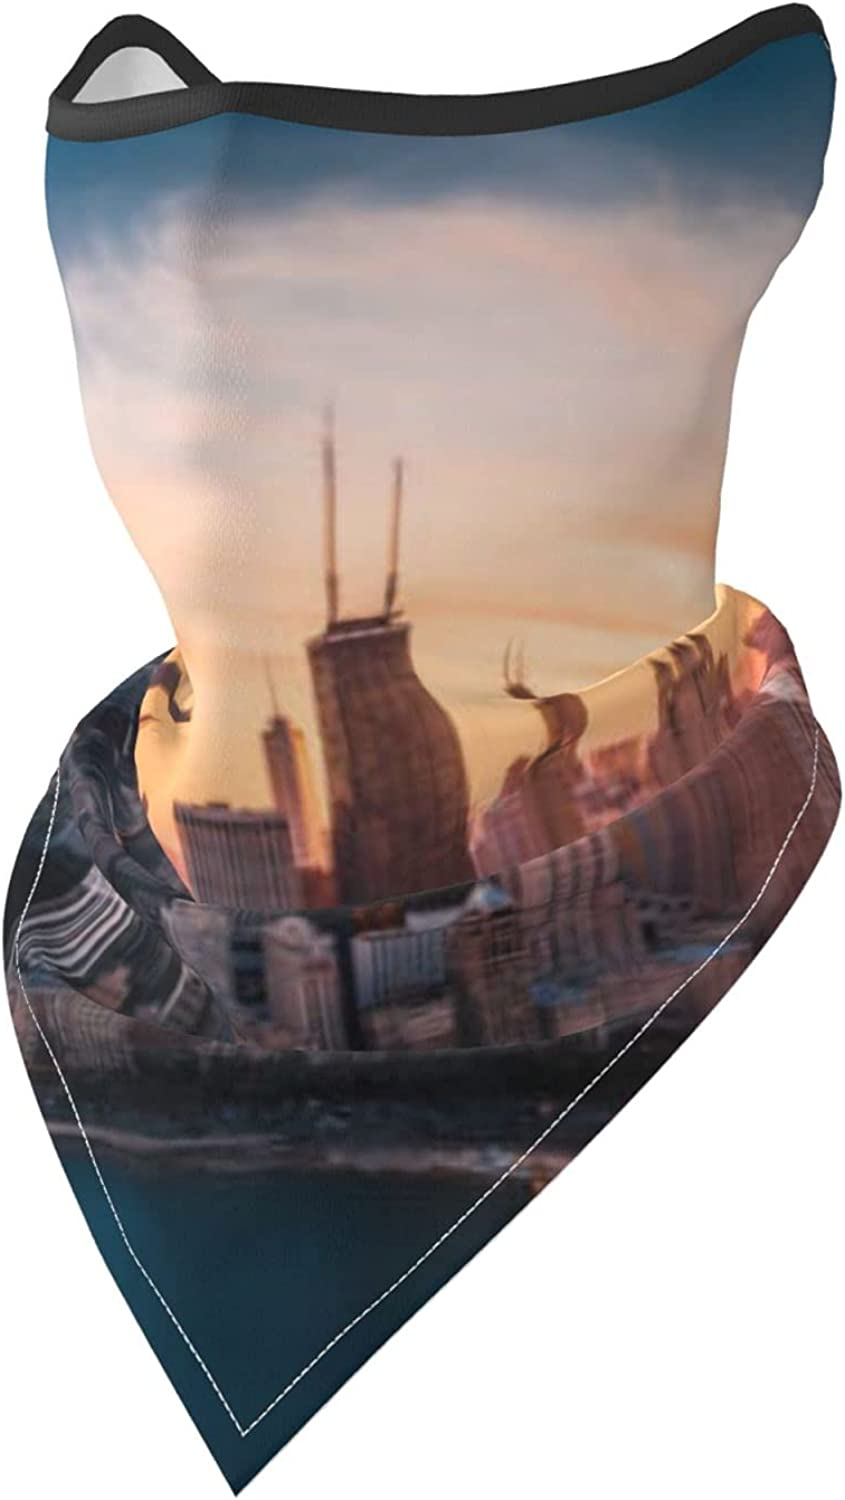 Downtown Chicago at Sunset Usa Pictures Prints Breathable Bandana Face Mask Neck Gaiter Windproof Sports Mask Scarf Headwear for Men Women Outdoor Hiking Cycling Running Motorcycling